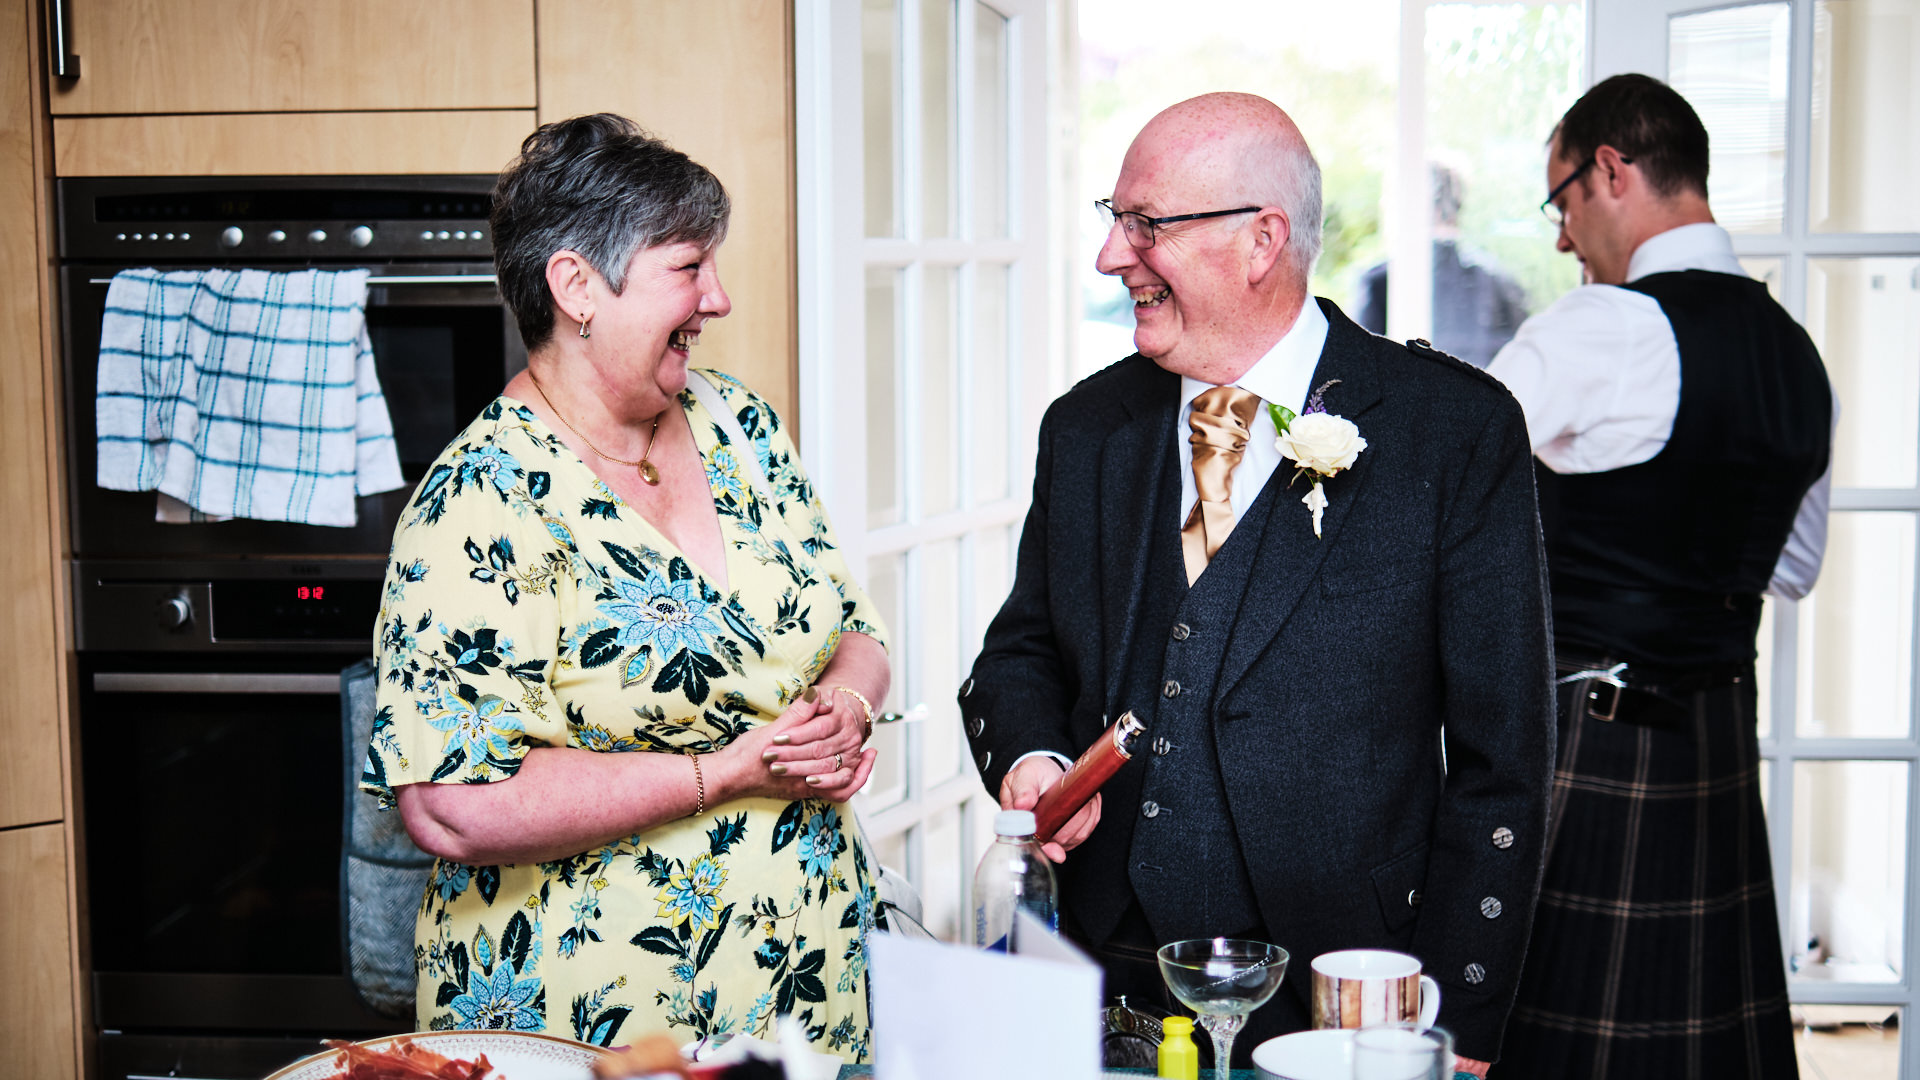 colour photograph of the  father of the bride laughing with one the guests on the morning of his daughter's wedding